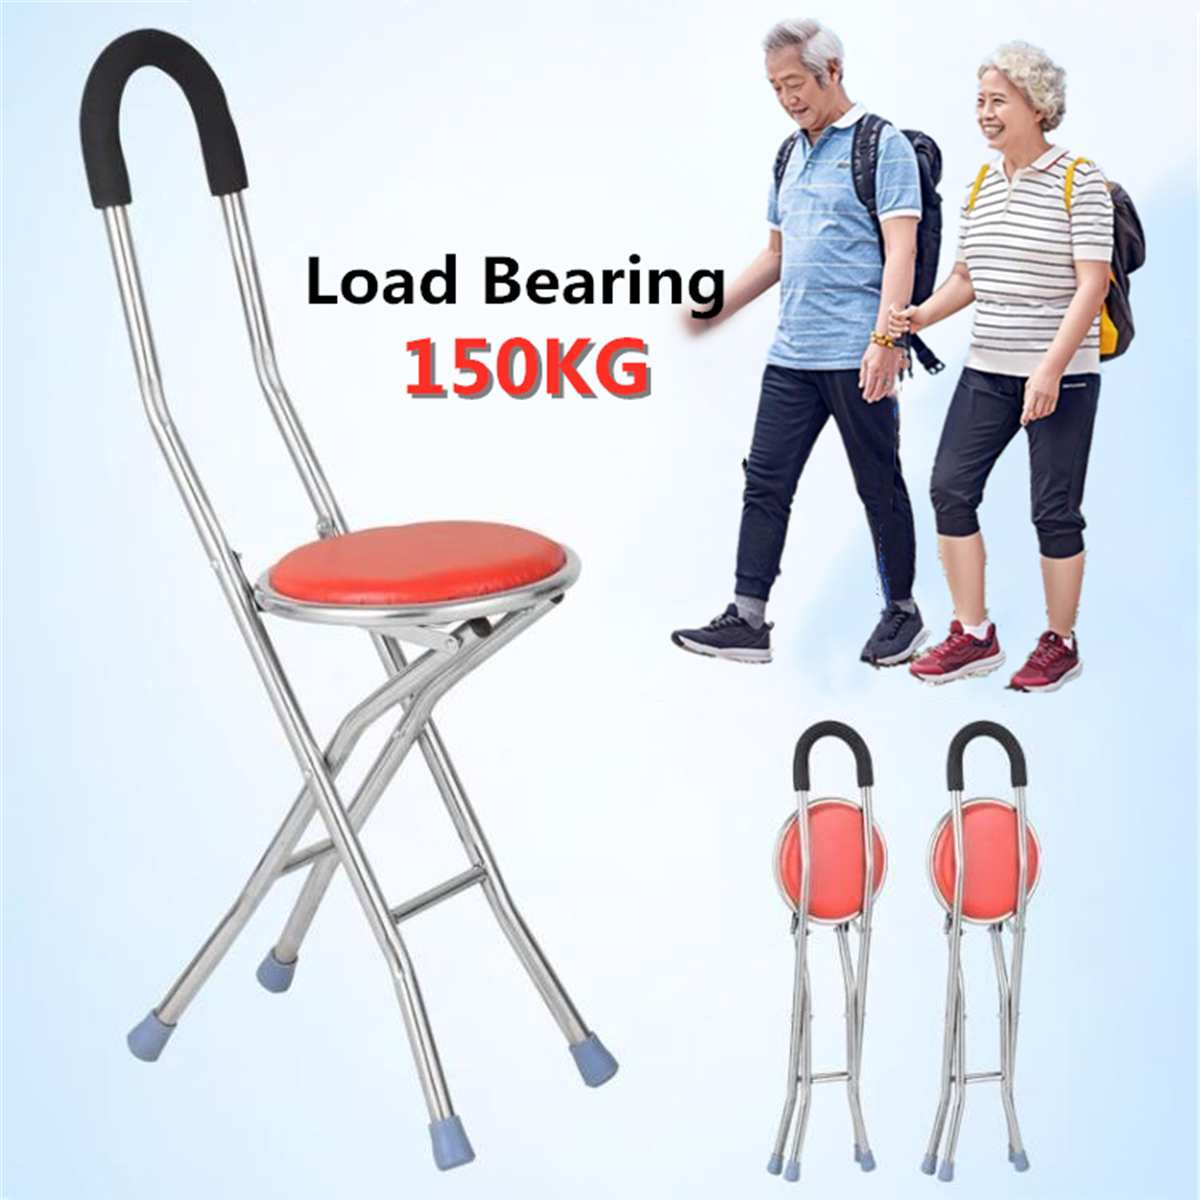 Foldable Elderly Care Walking Cane Stick 2 In 1 Chair Four Legs Up To 150 KG Adjustable Cane Chair Stool Seat Portable Crutch